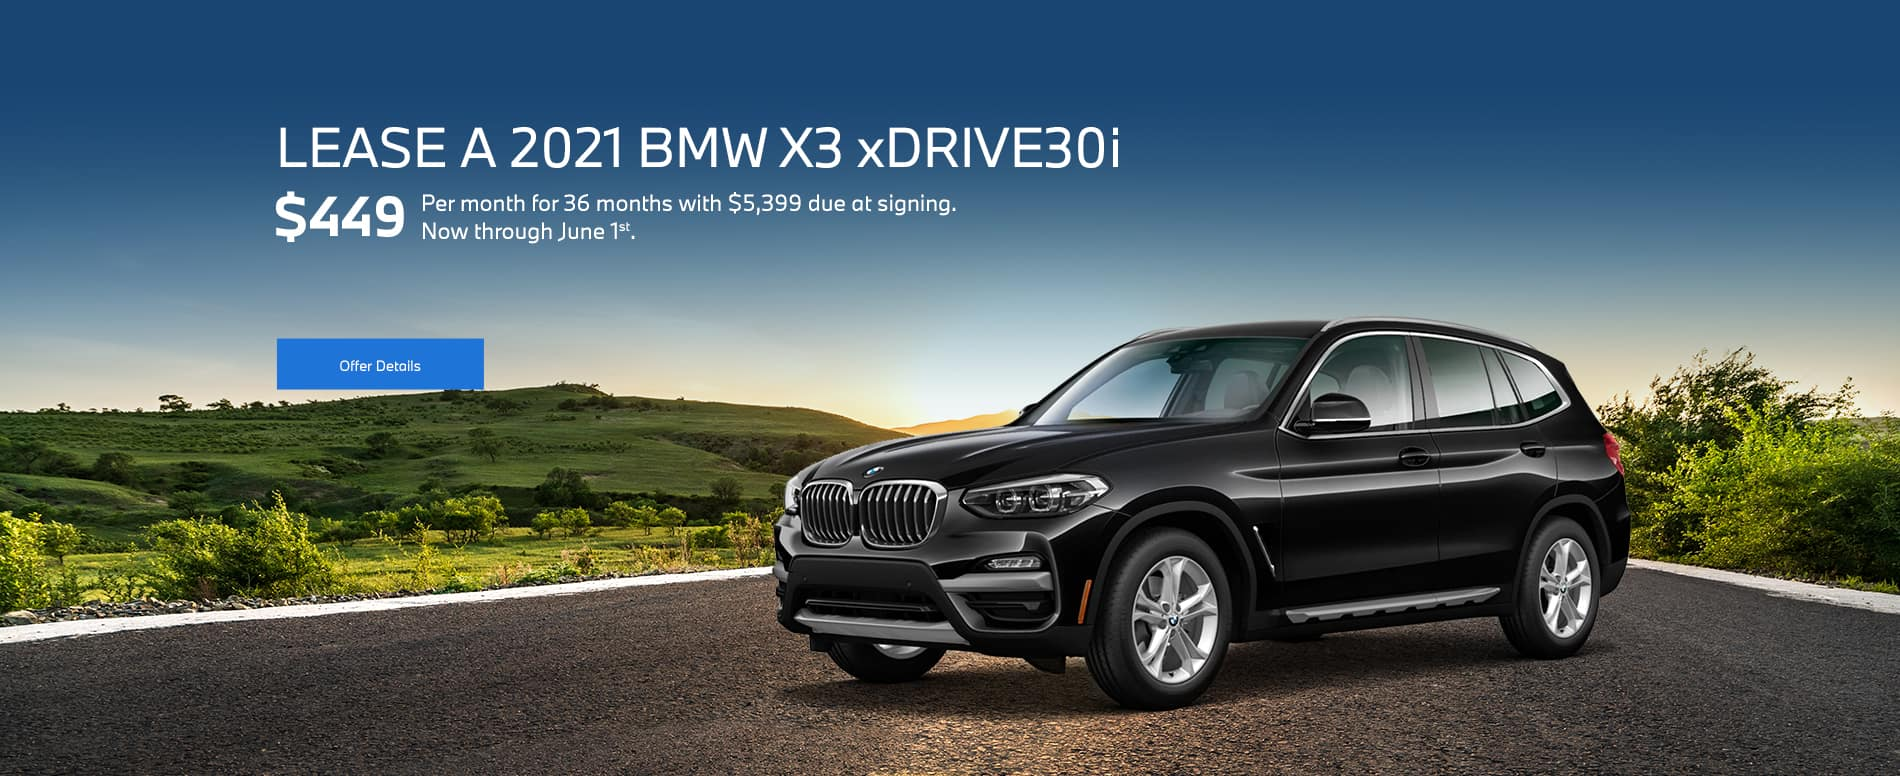 A black new 2021 BMW X3 leasing for $449/month for 36 months with $5,399 due at signing